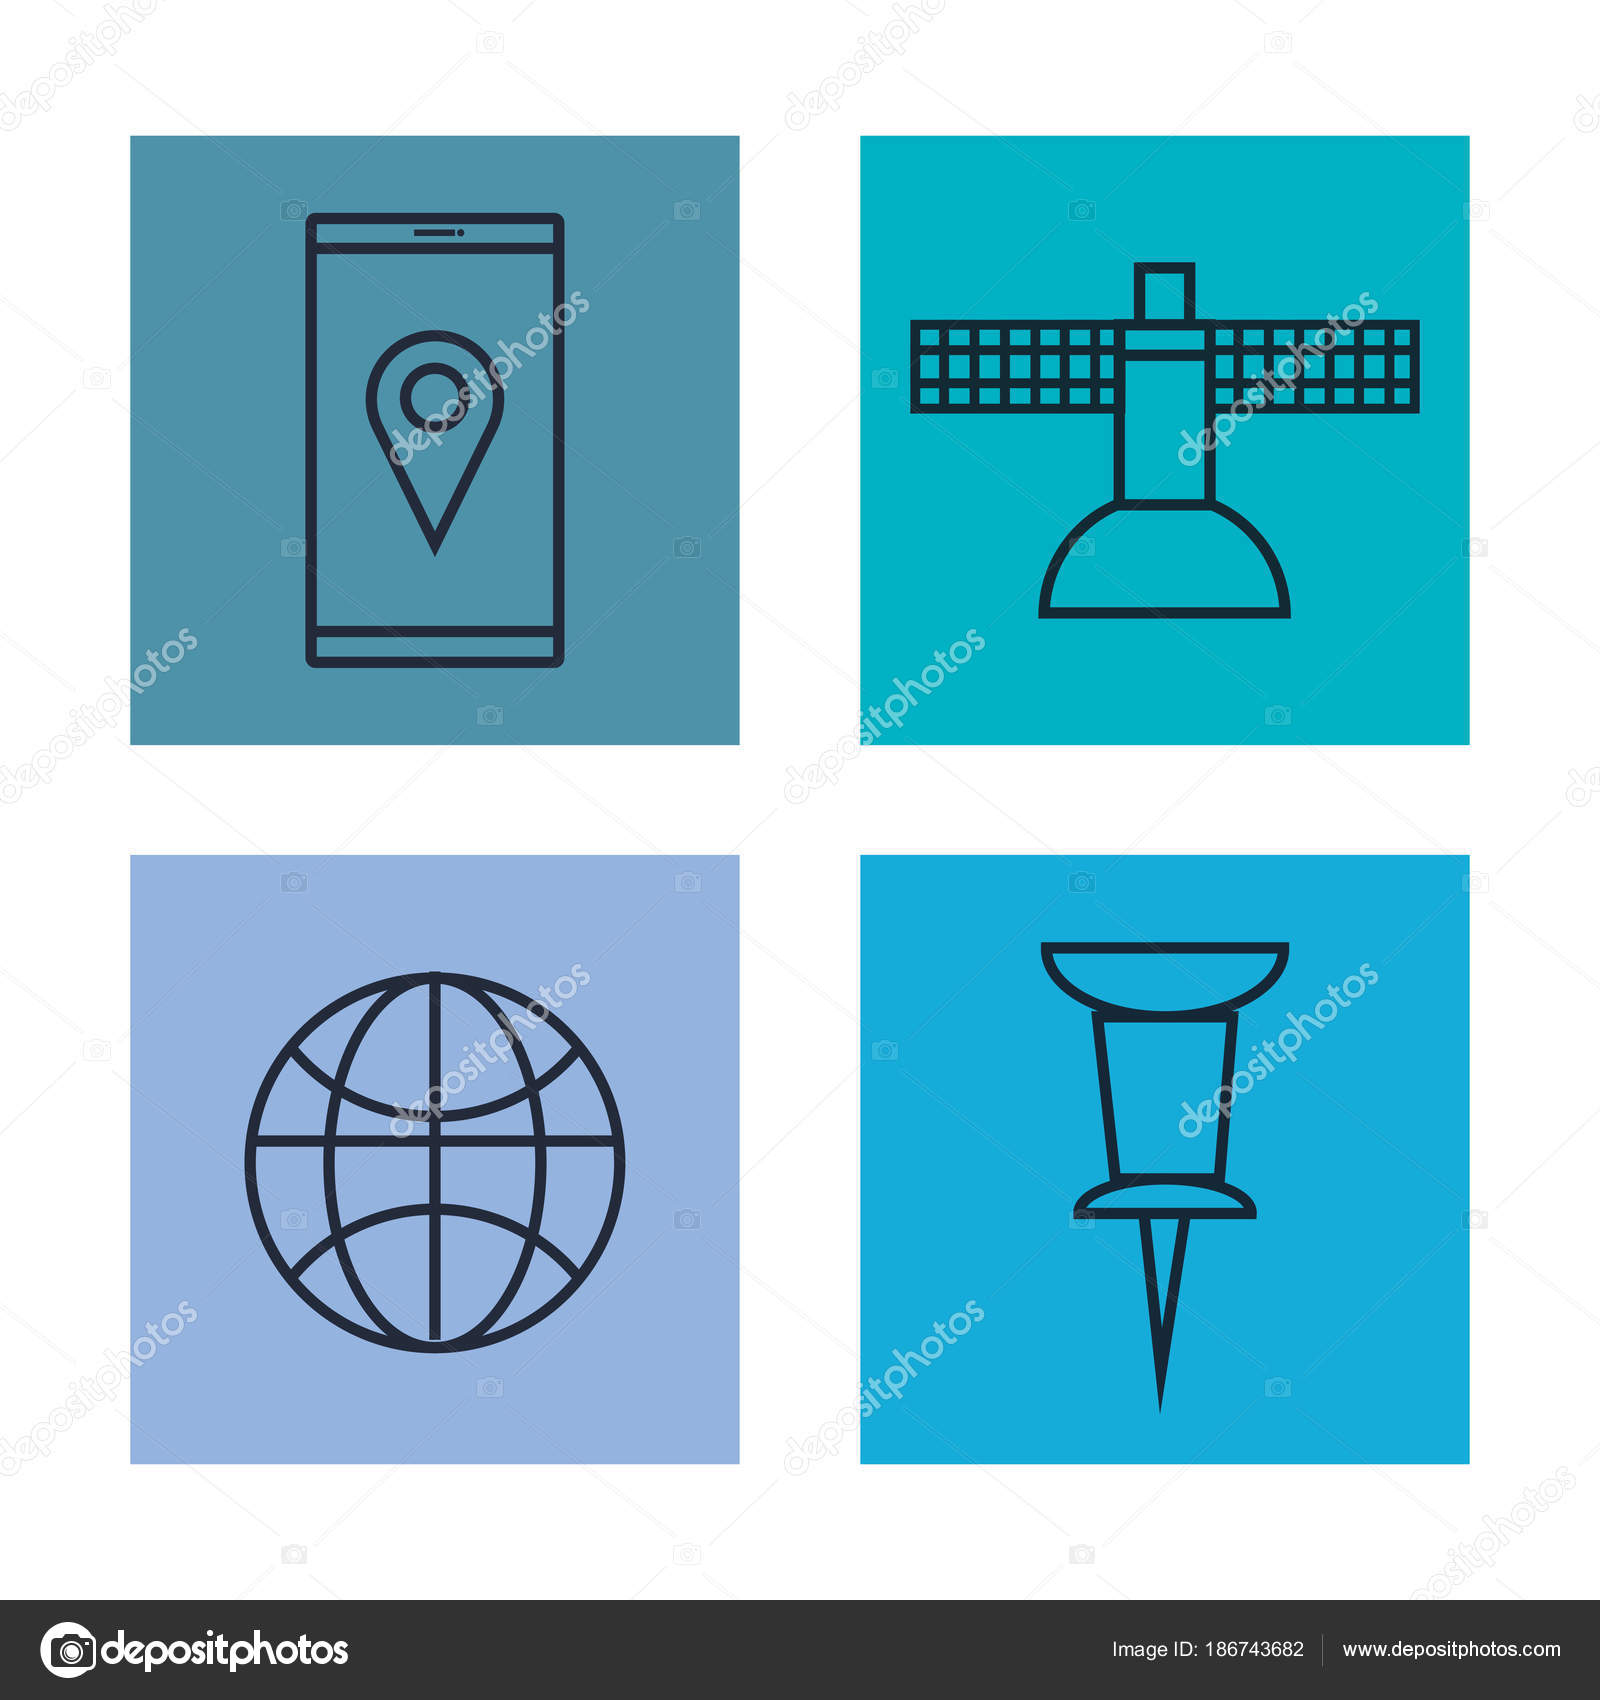 gps navigation app icons — Stock Vector © yupiramos #186743682